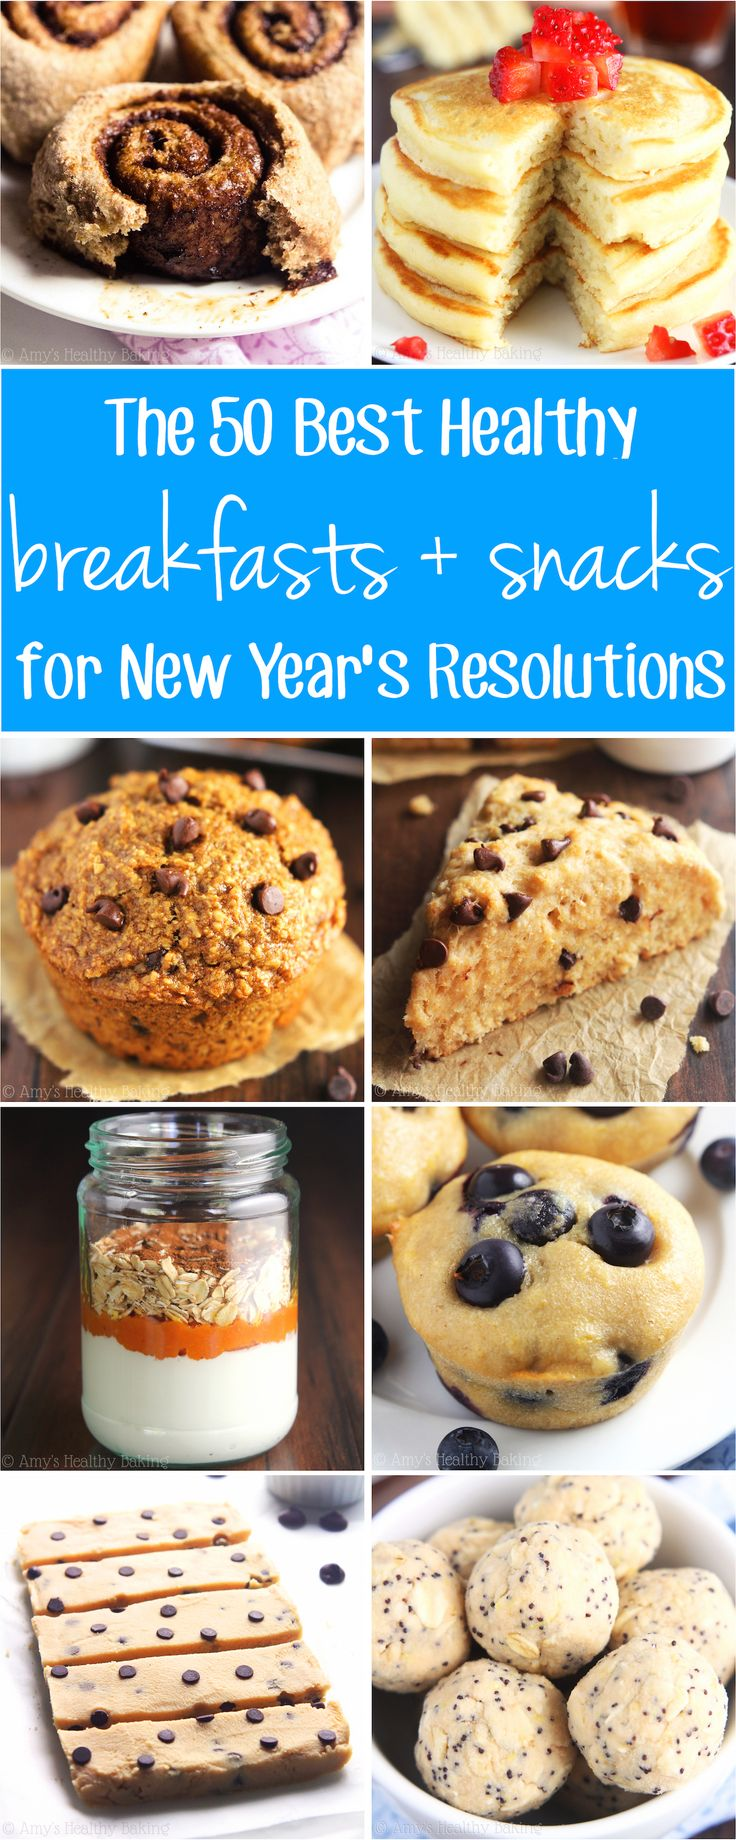 Jumpstart your weight-loss & fitness goals with these super easy recipes! They contain NO butter, refined flour or sugar -- but don't taste healthy at all!